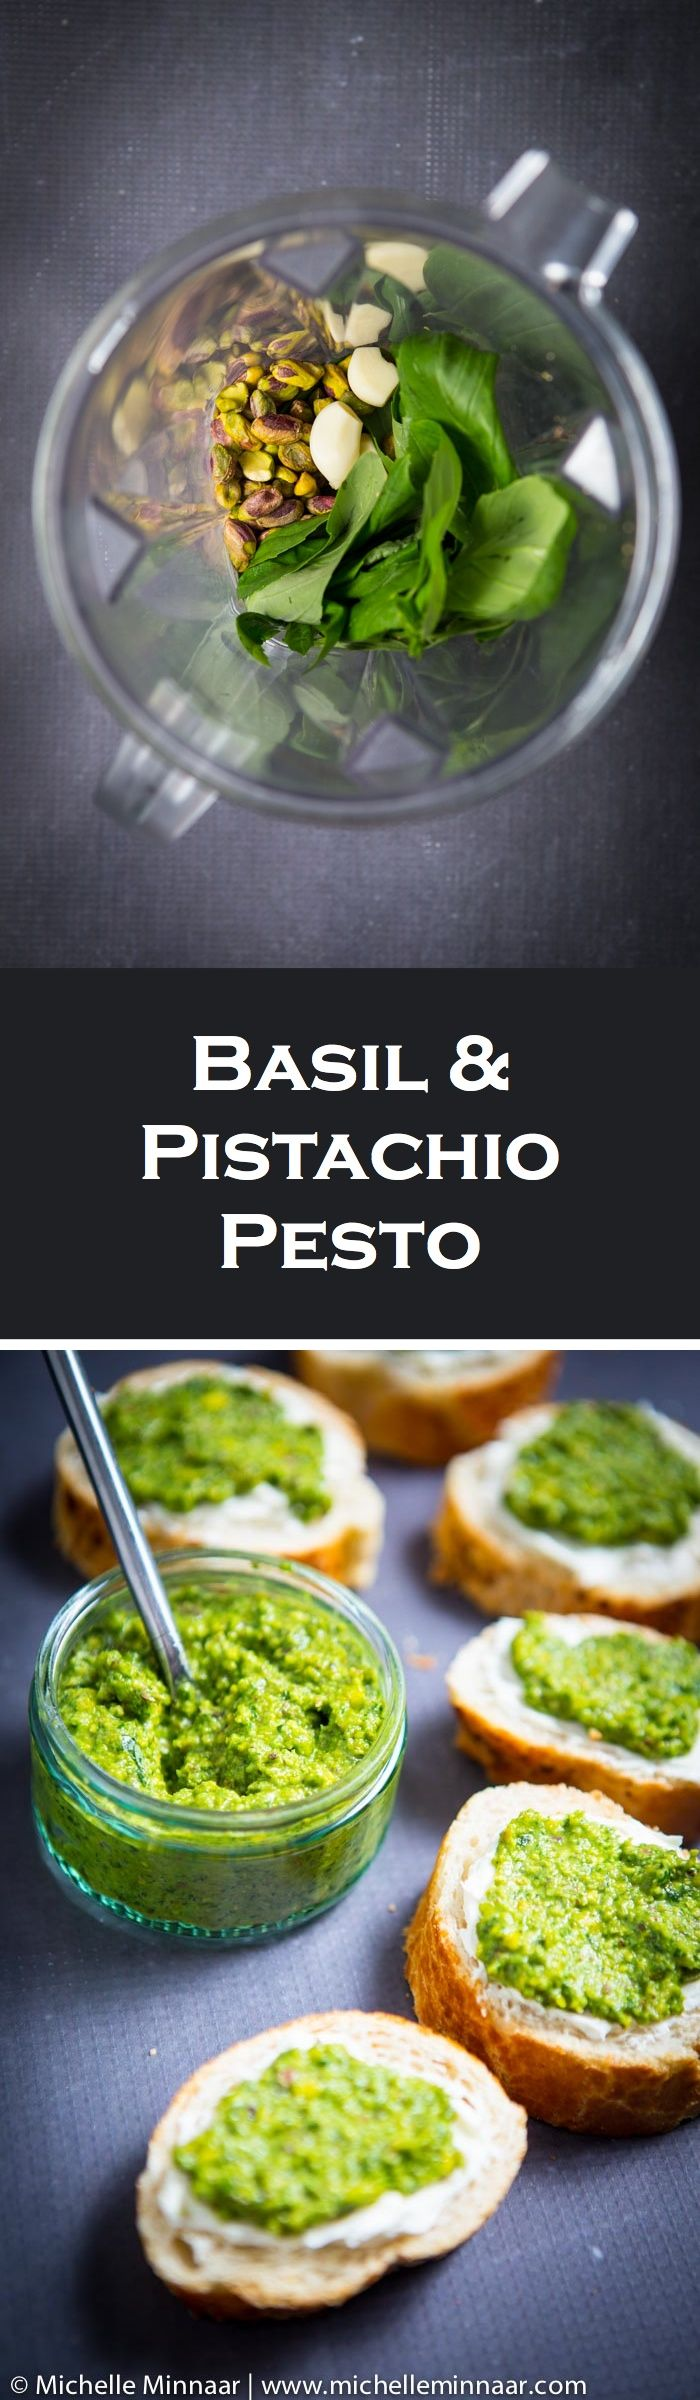 Basil & Pistachio Pesto - Easy to make a big batch and then freeze in portions. Learn how to use pesto in 21 different ways!